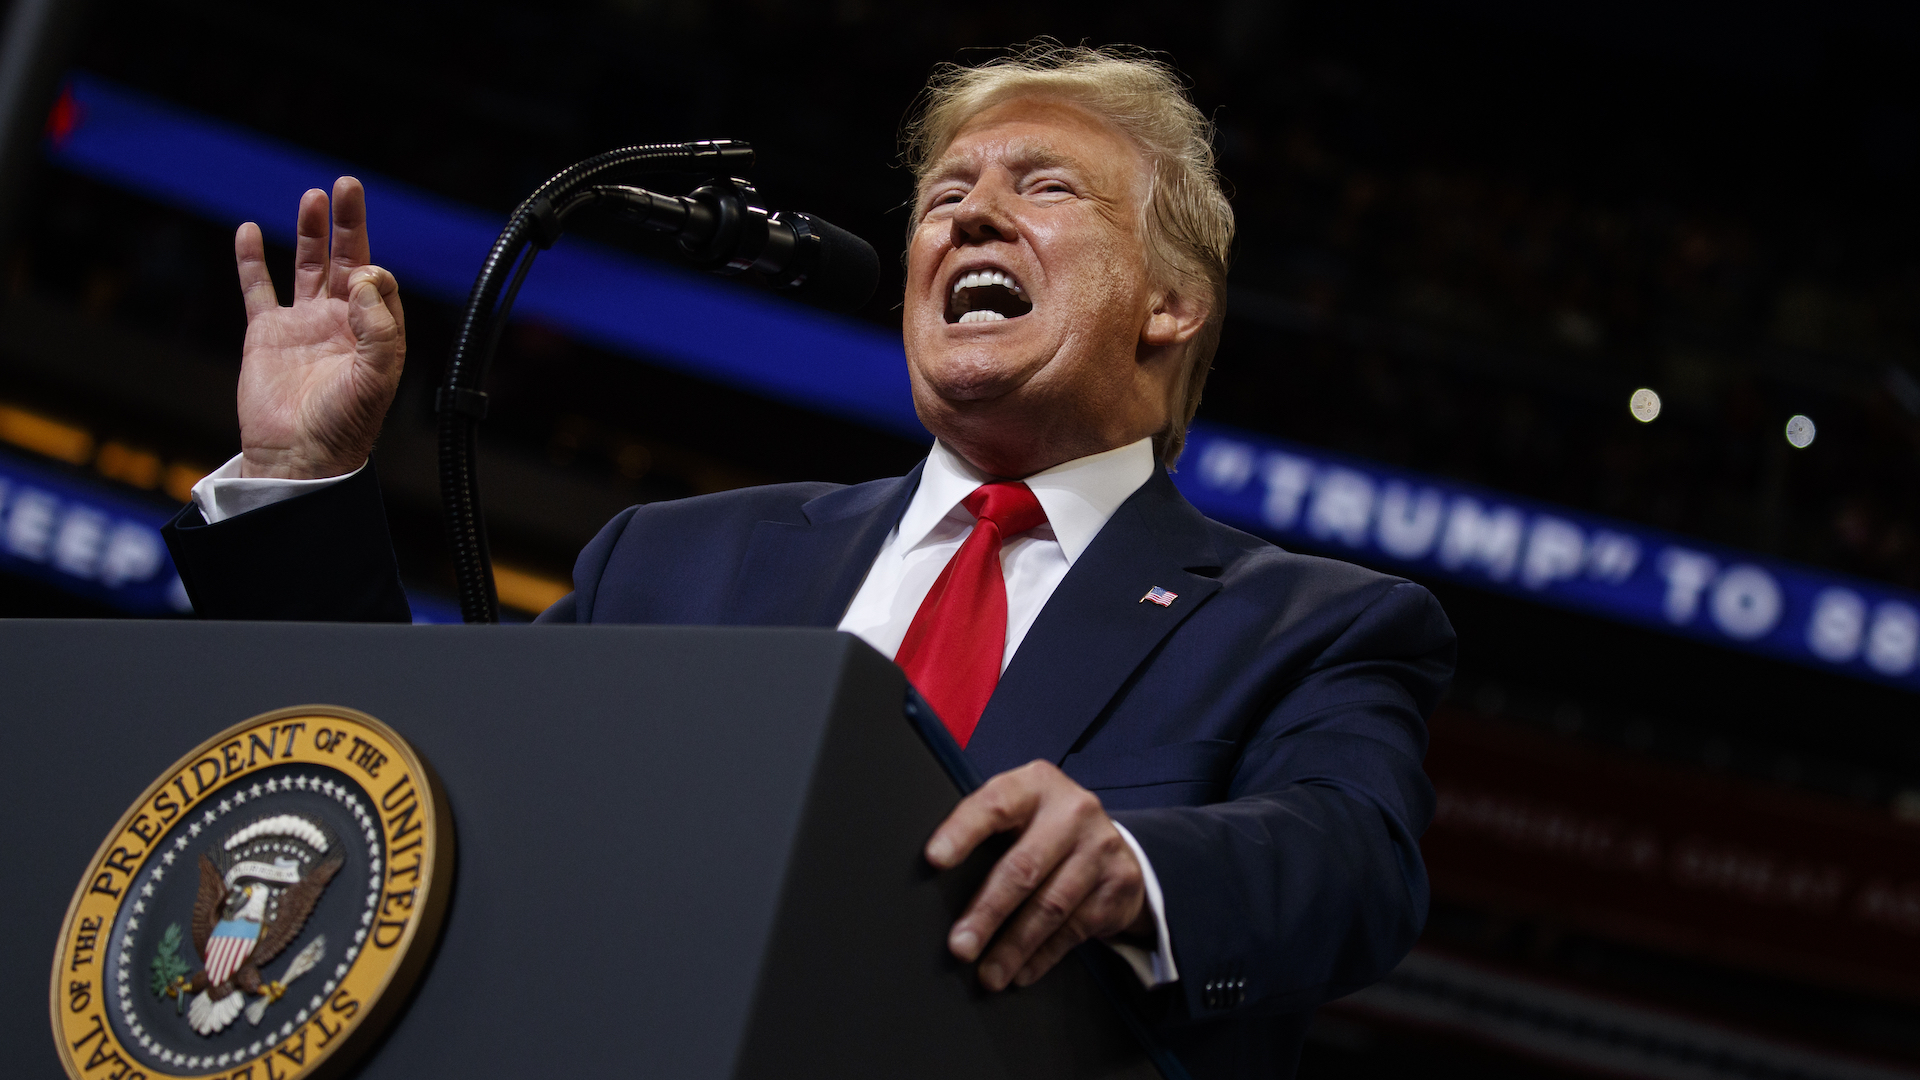 5 takeaways from Trump's 2020 campaign launch speech